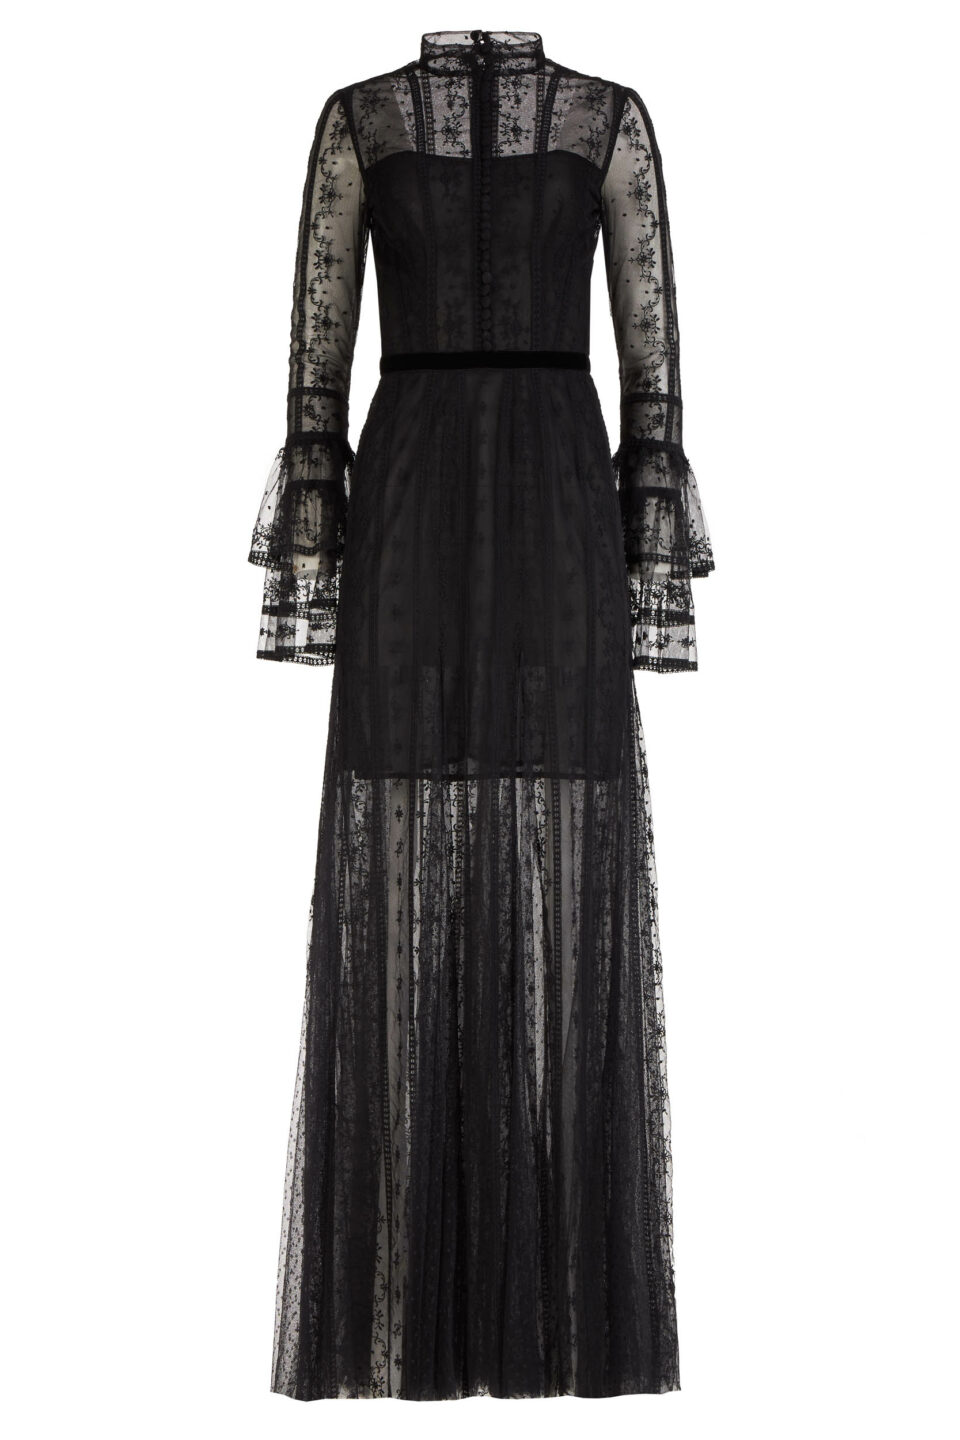 Scarlett FW2160 Black Embroidered French Tulle Gown with Inner Mini Dress & Layer Fluted Sleeves